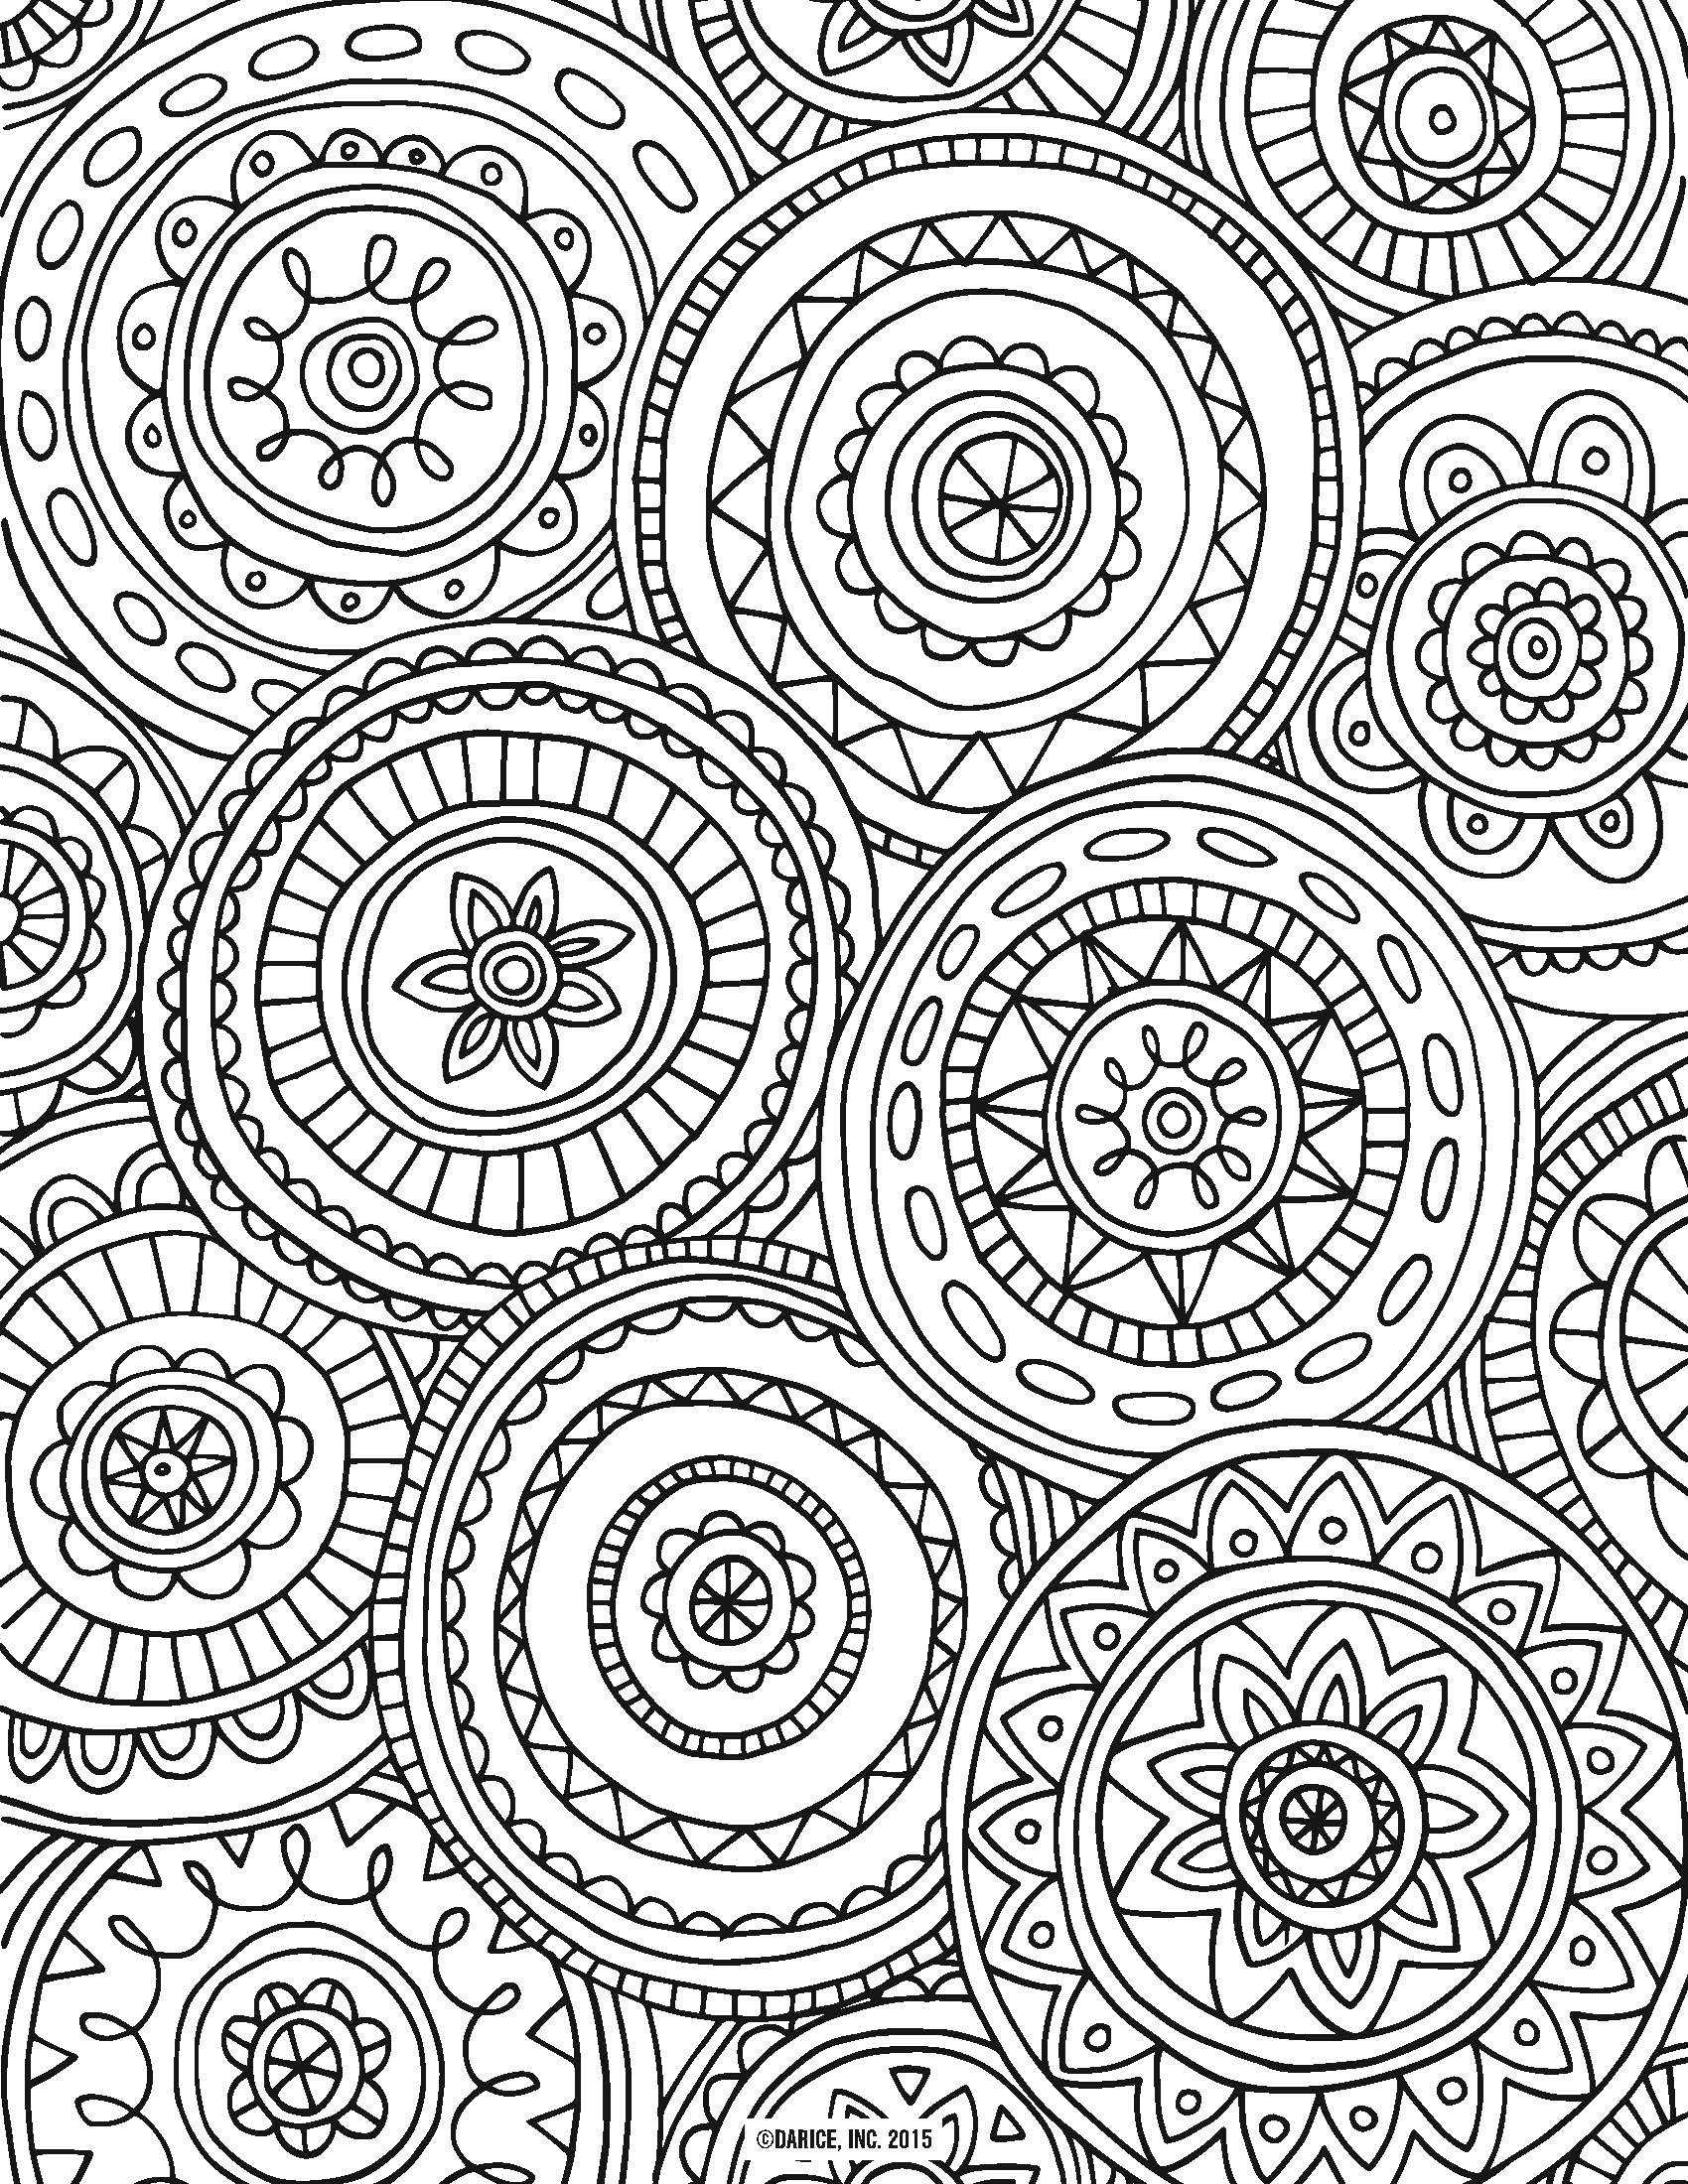 Coloring Pages Online For Adults At Book Menmadeho Colors In 20845